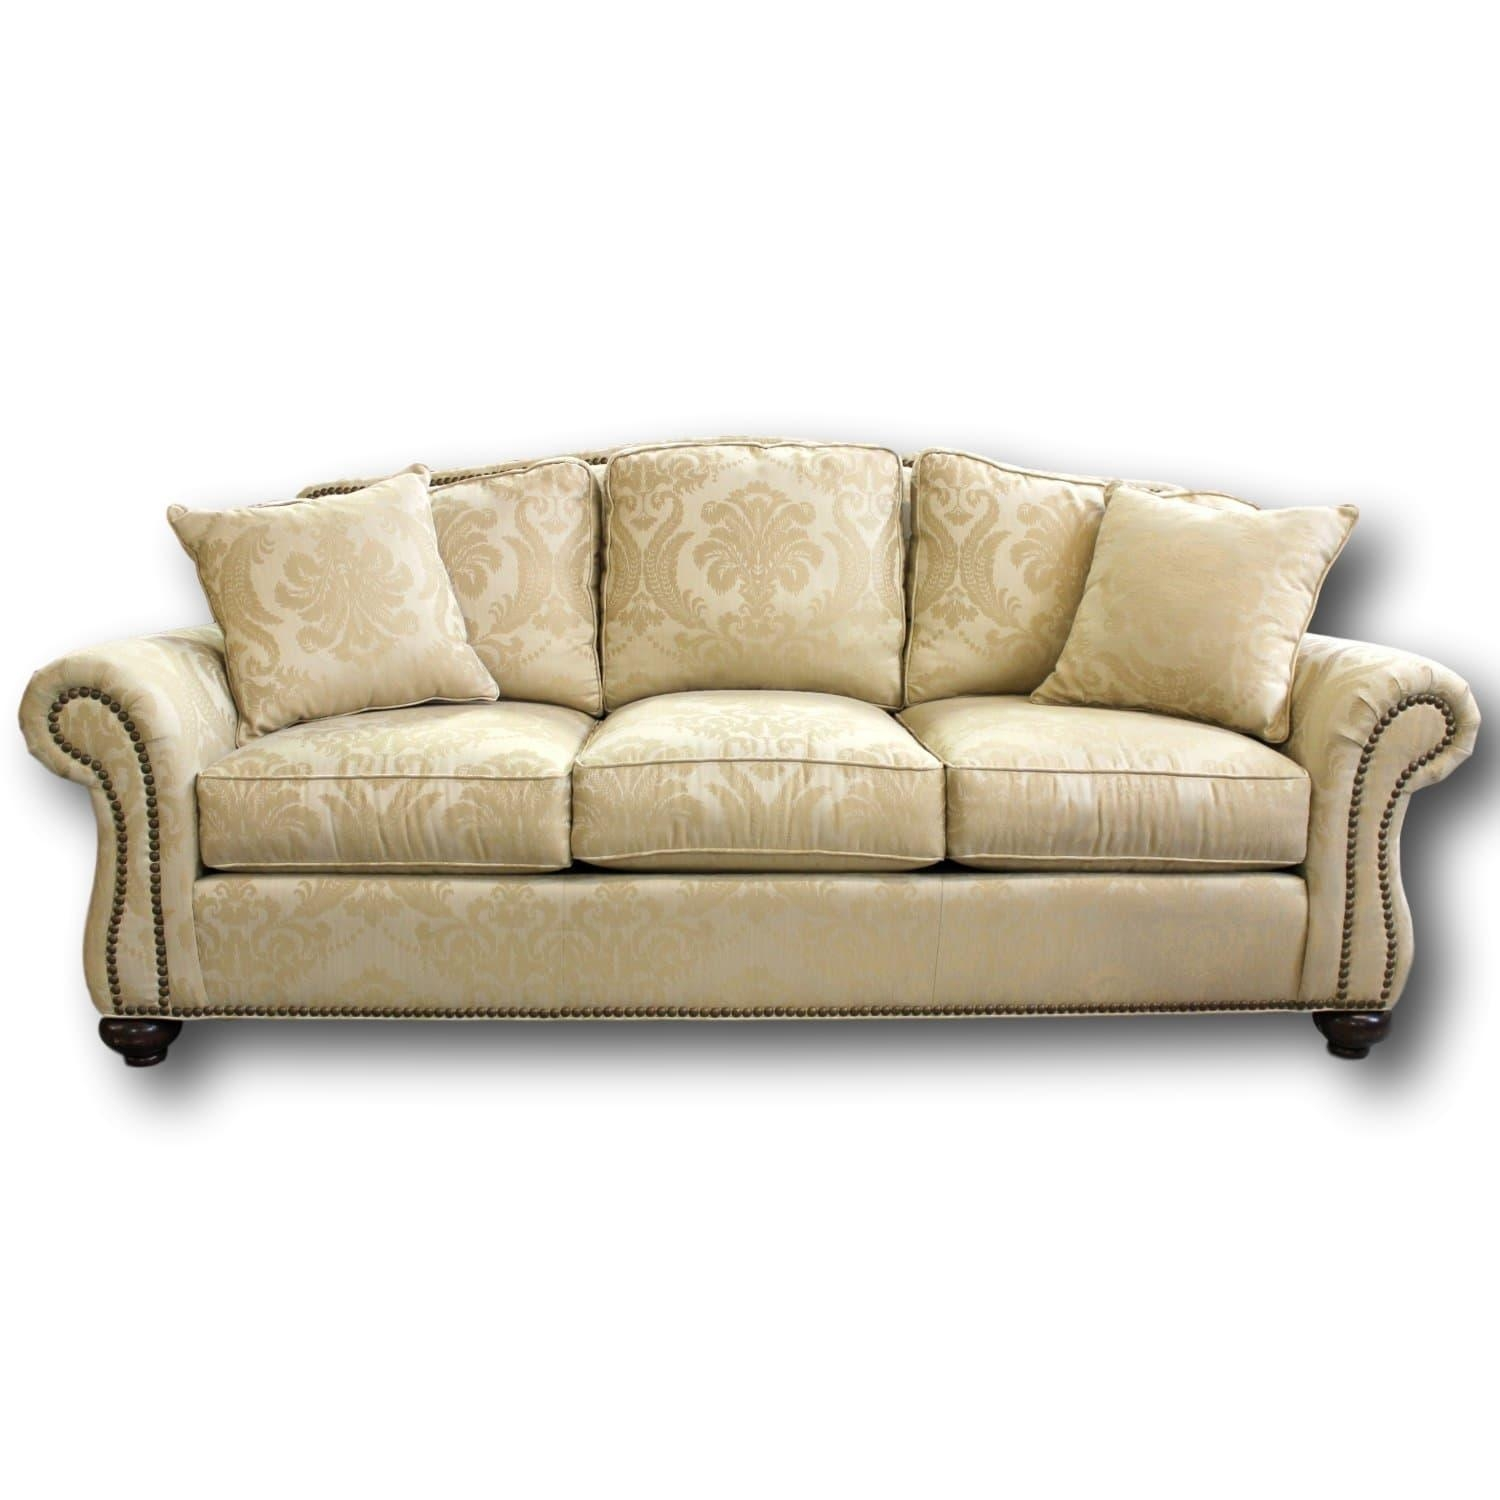 Alan White Sofa For Sale (View 6 of 20)